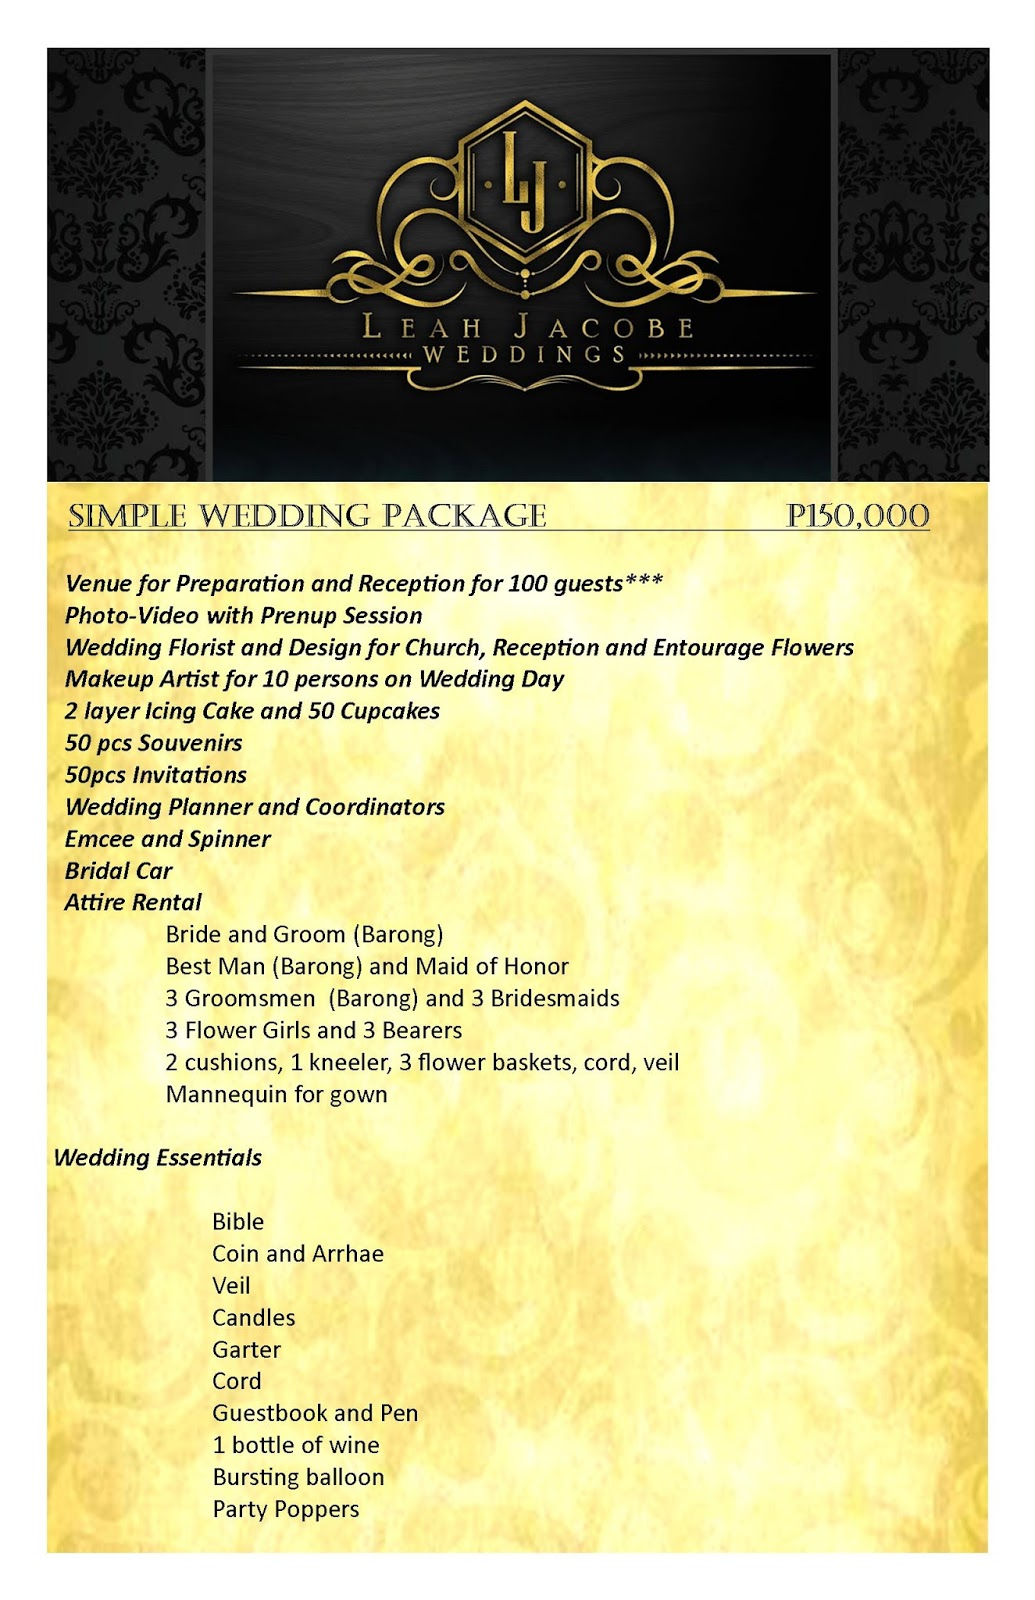 Here Is Our Very Affordable Wedding Package That Value For Your Hard Earned Money